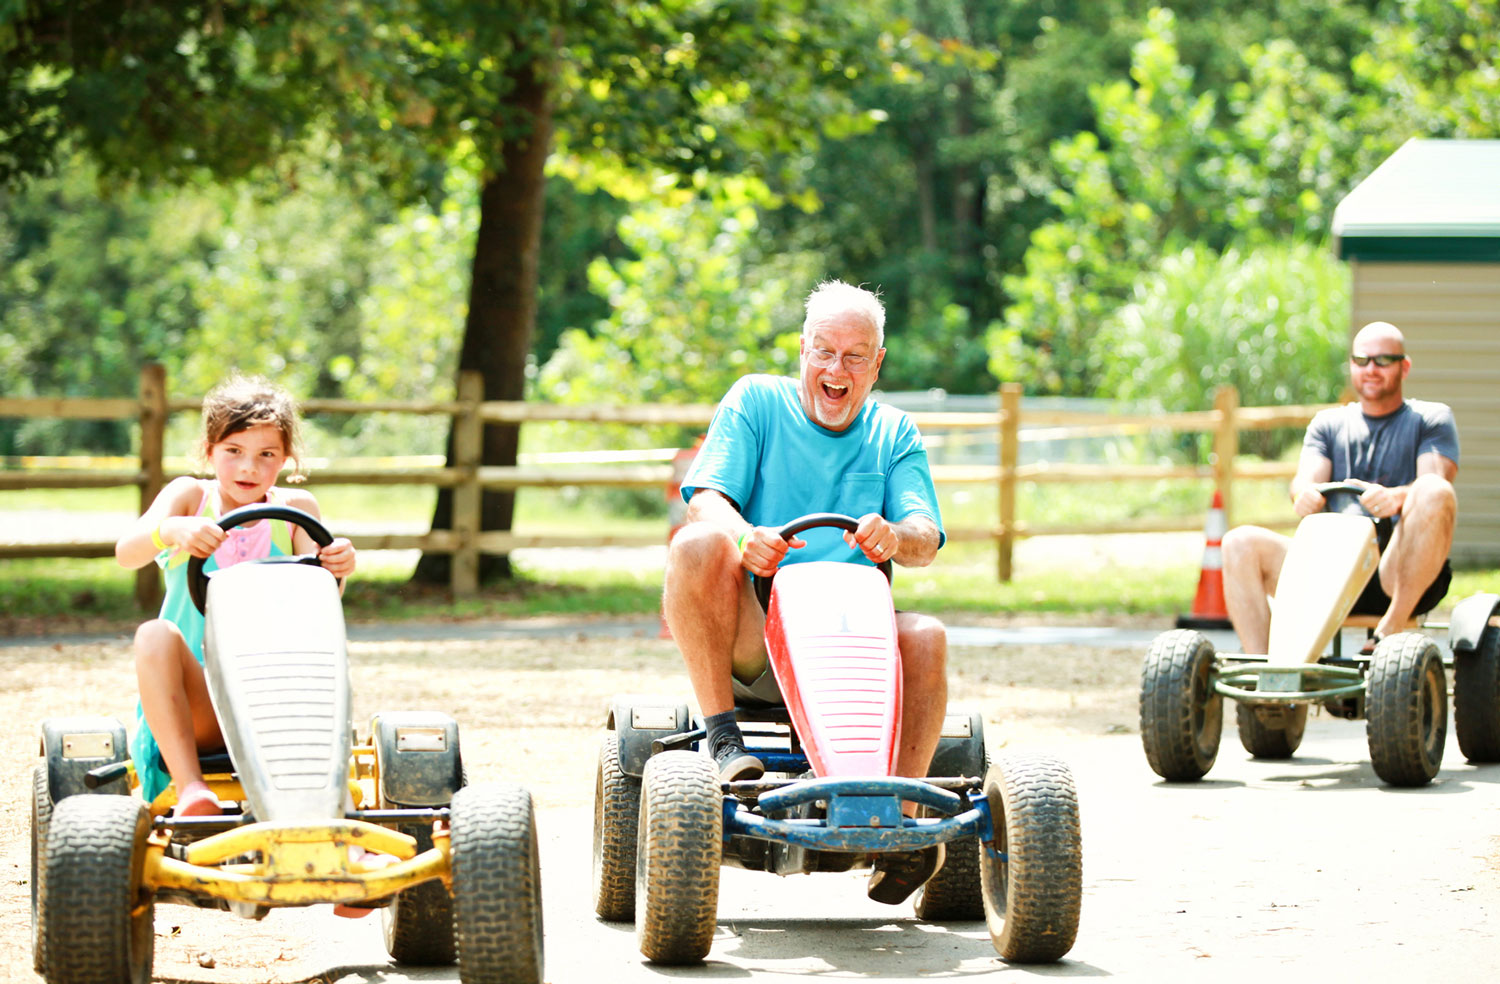 father and daughter on campground pedal carts on racetrack